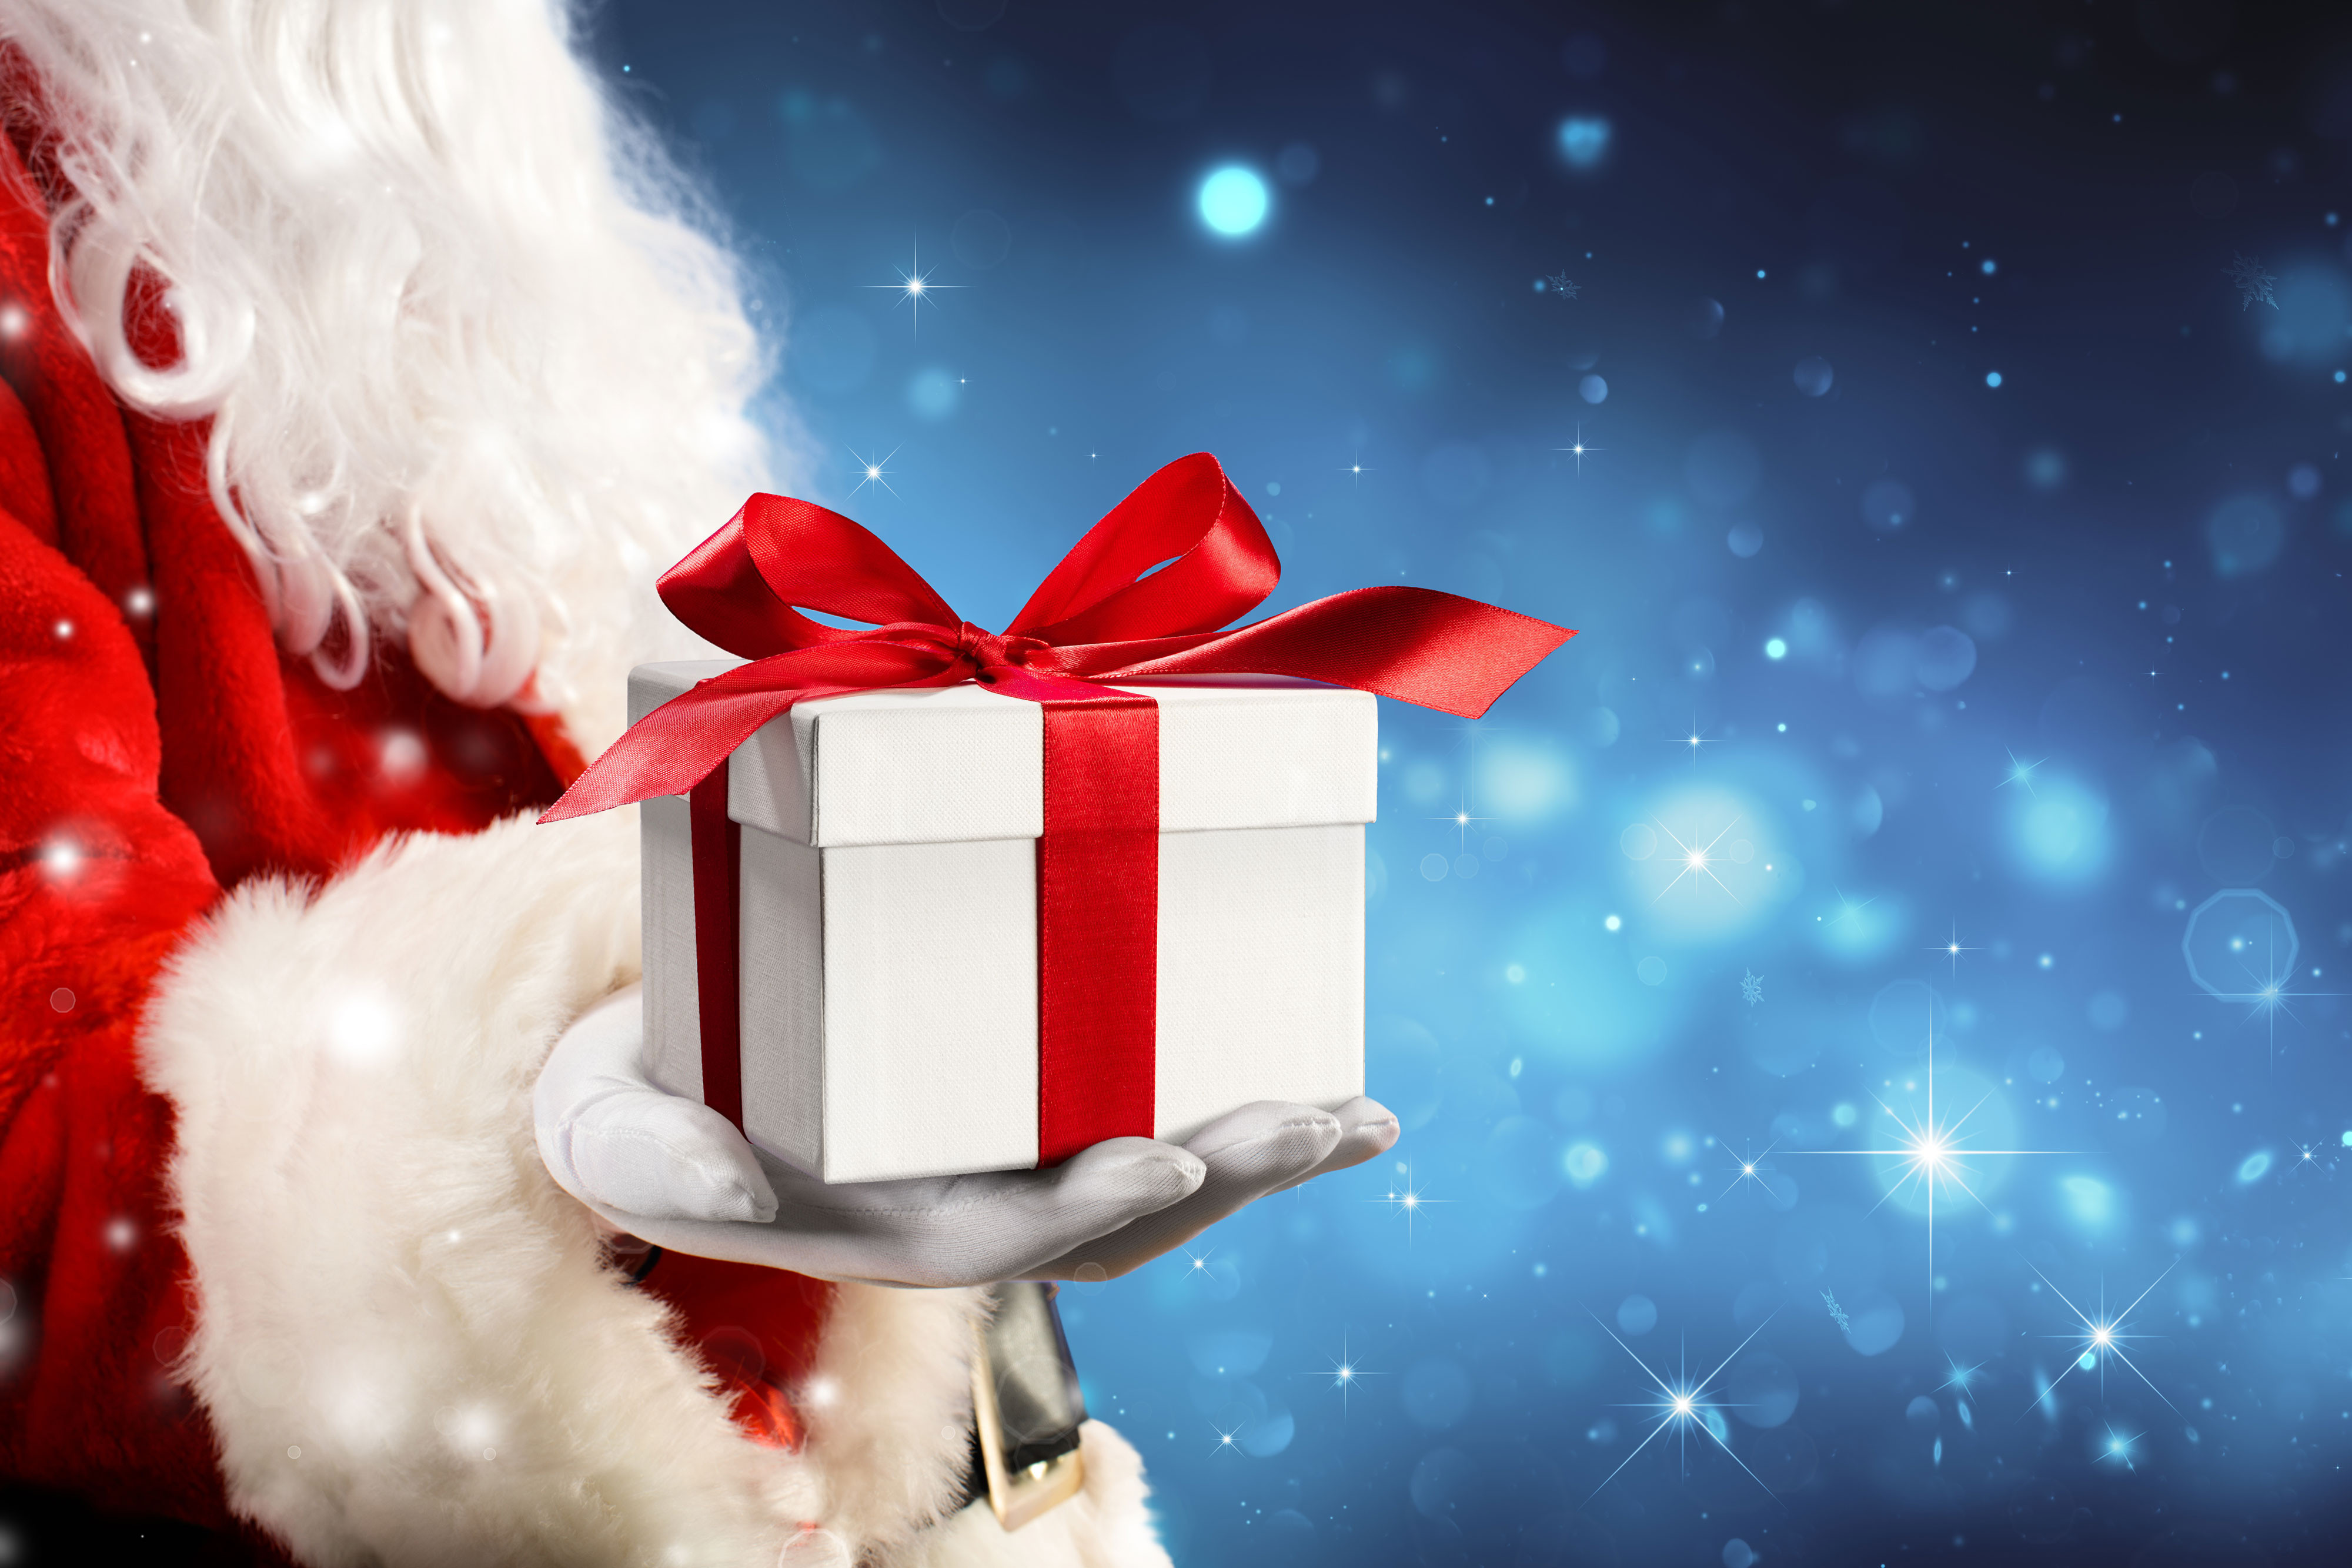 The Best Place For A Unique Holiday Party Near Orlando Florida | Santa holding gift